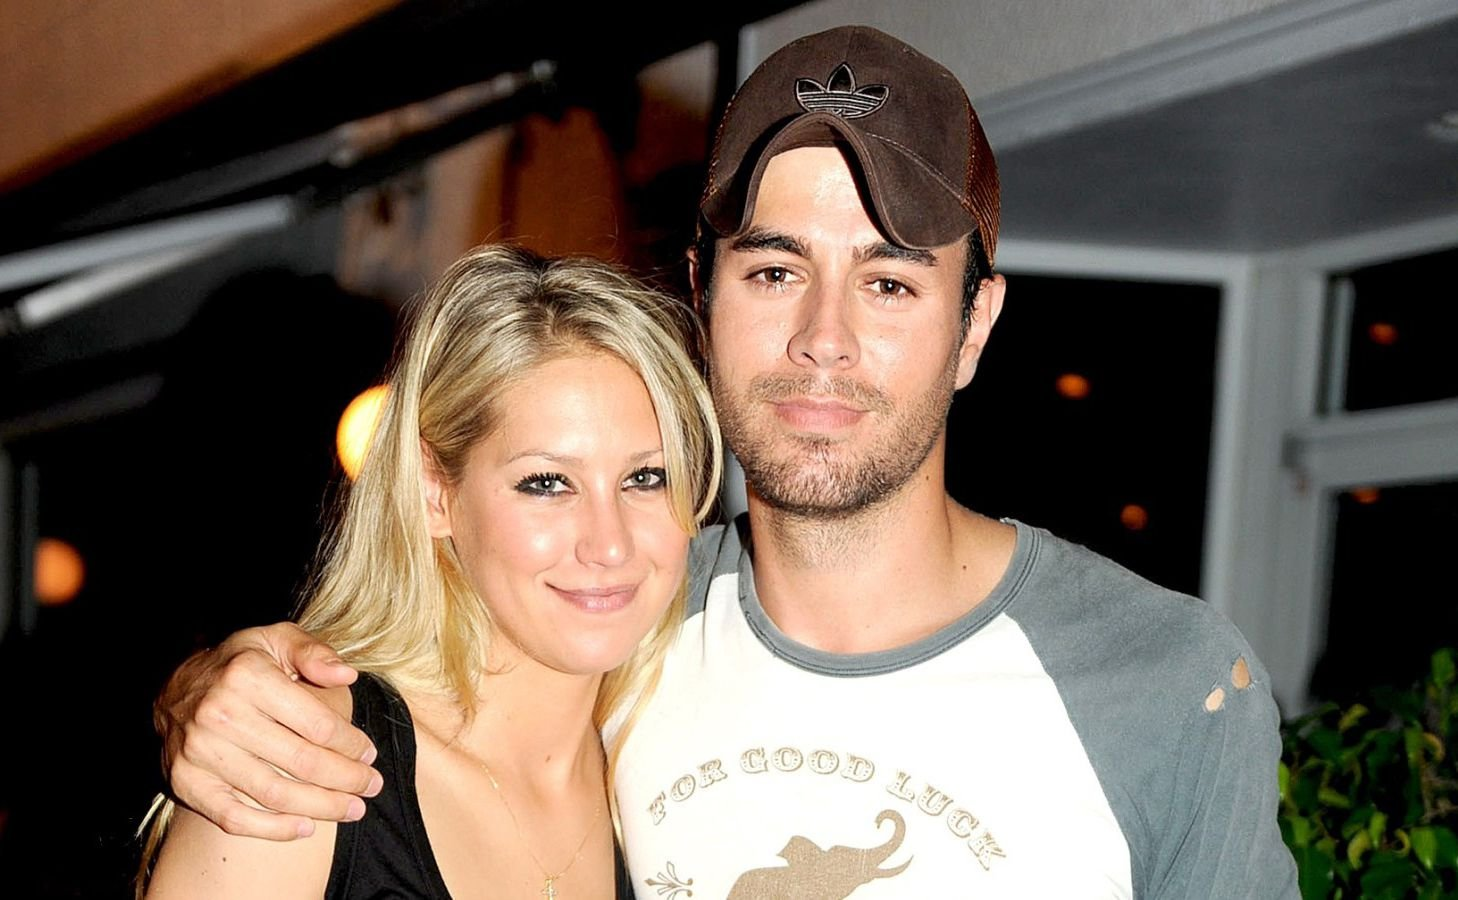 The daughter of Enrique Iglesias and Anna Kournikova danced incendiaryly to the new song of dad